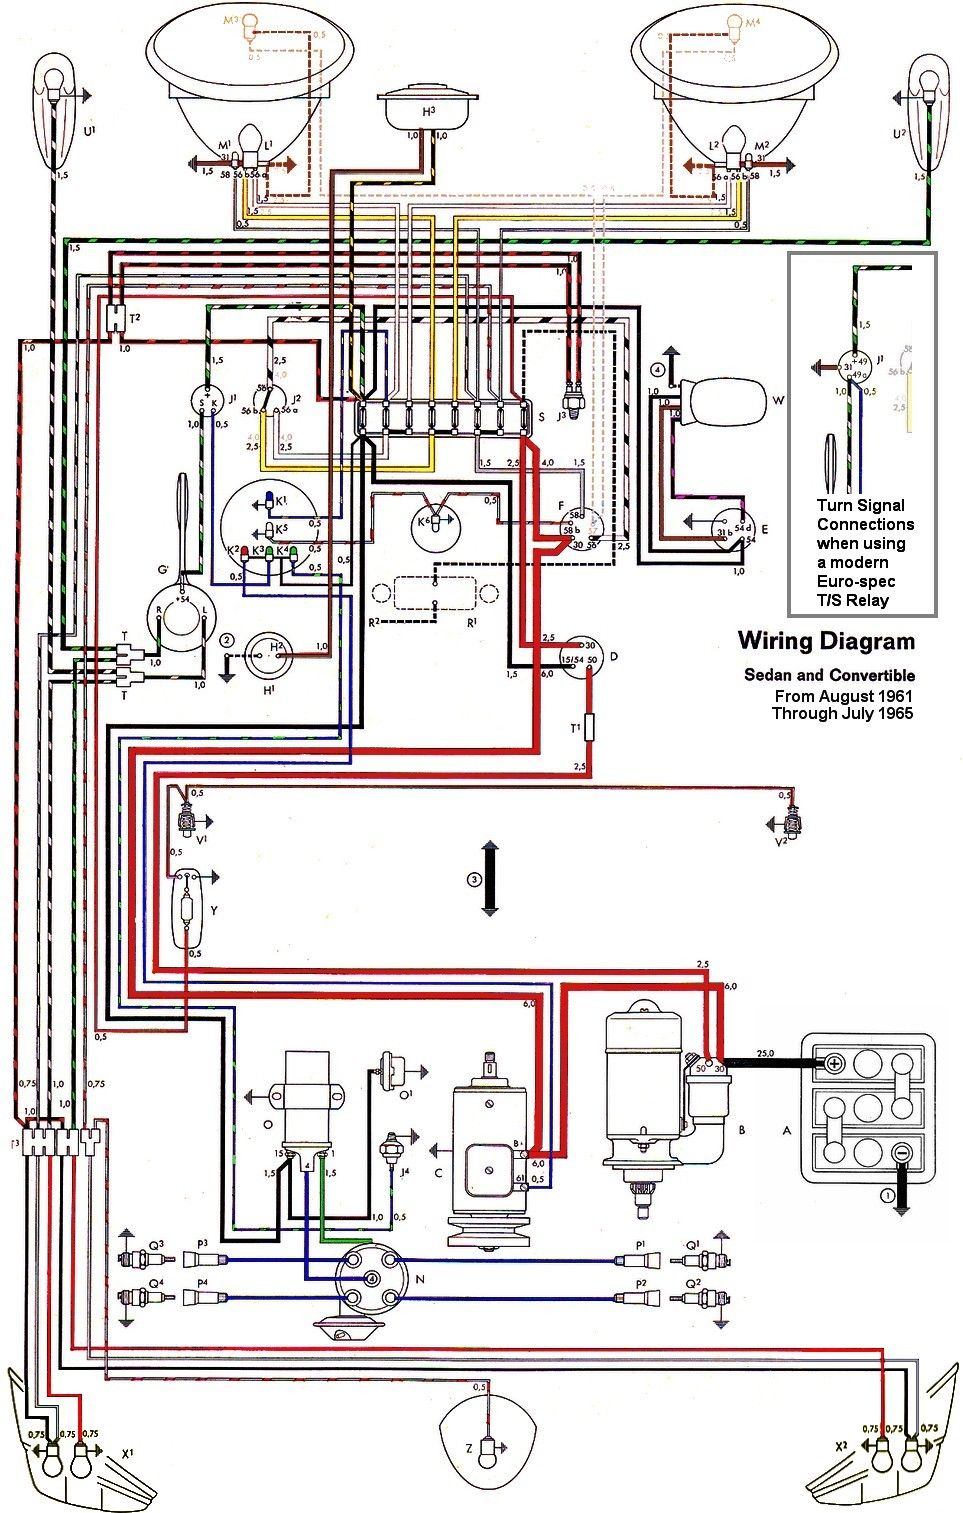 1962 vw bug wiring diagram free image wiring diagram engine wire rh linxglobal co 1972 VW Beetle Wiring Diagram 1965 VW Beetle Wiring Diagram